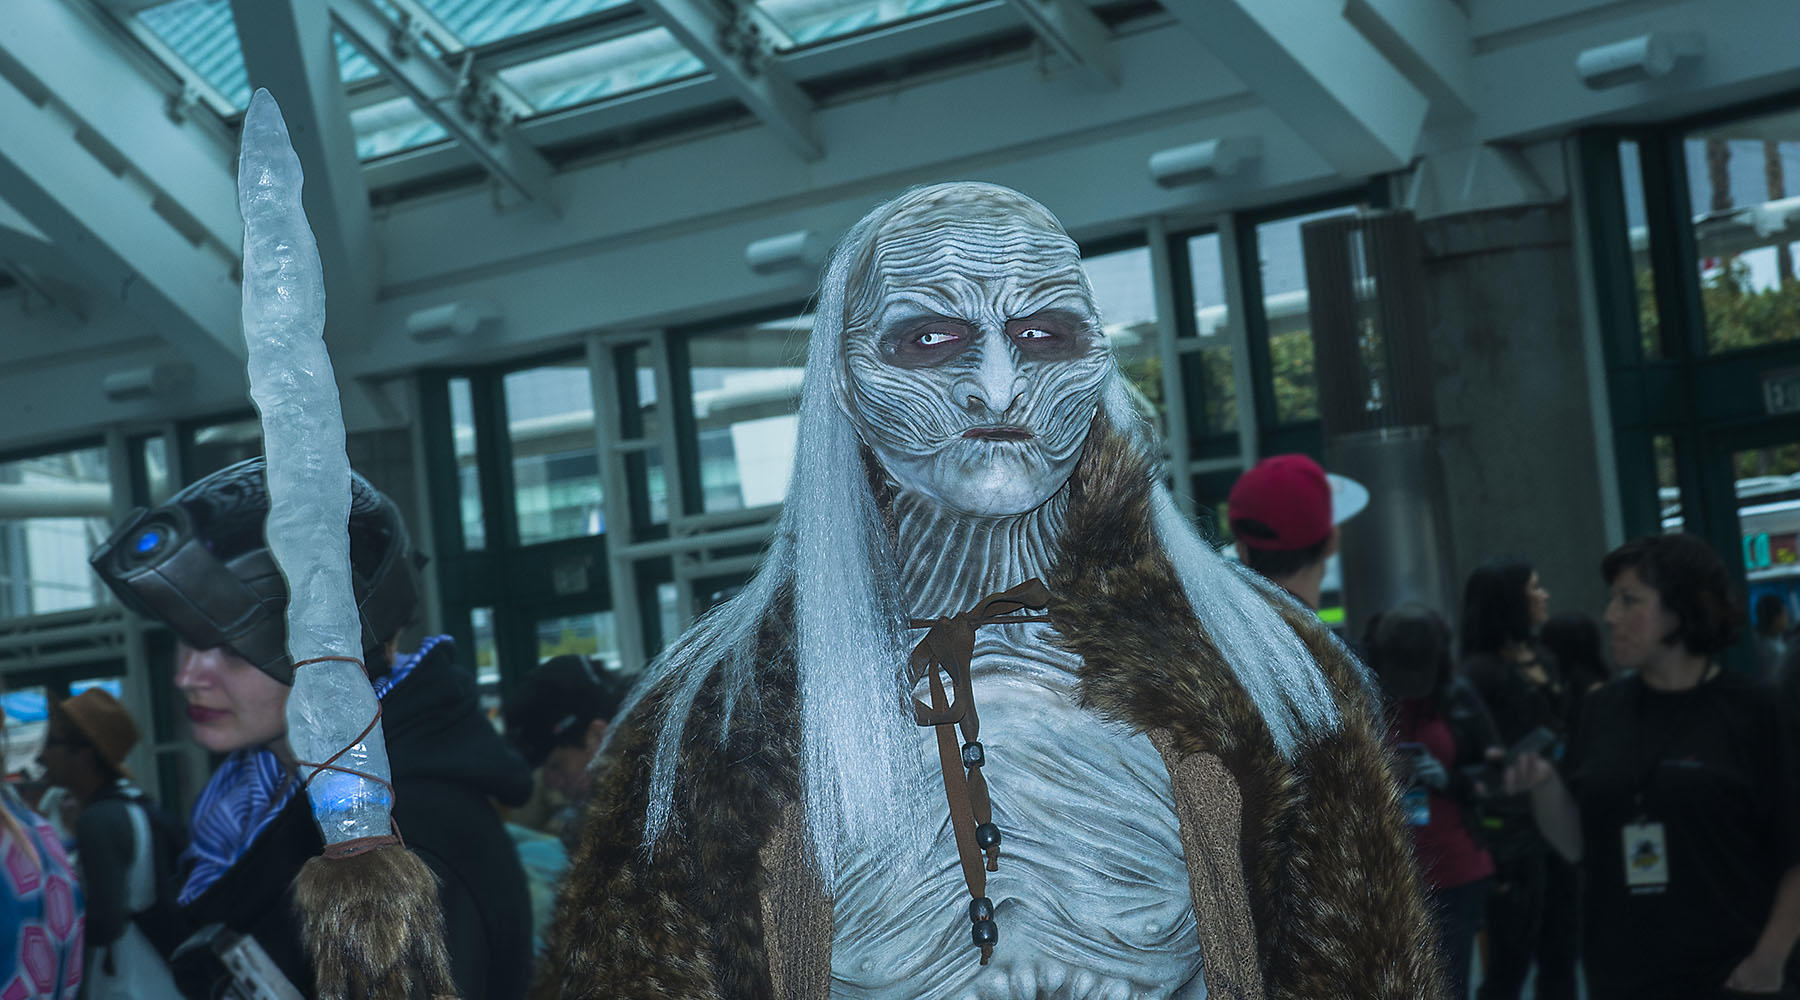 This leader of the White Walkers